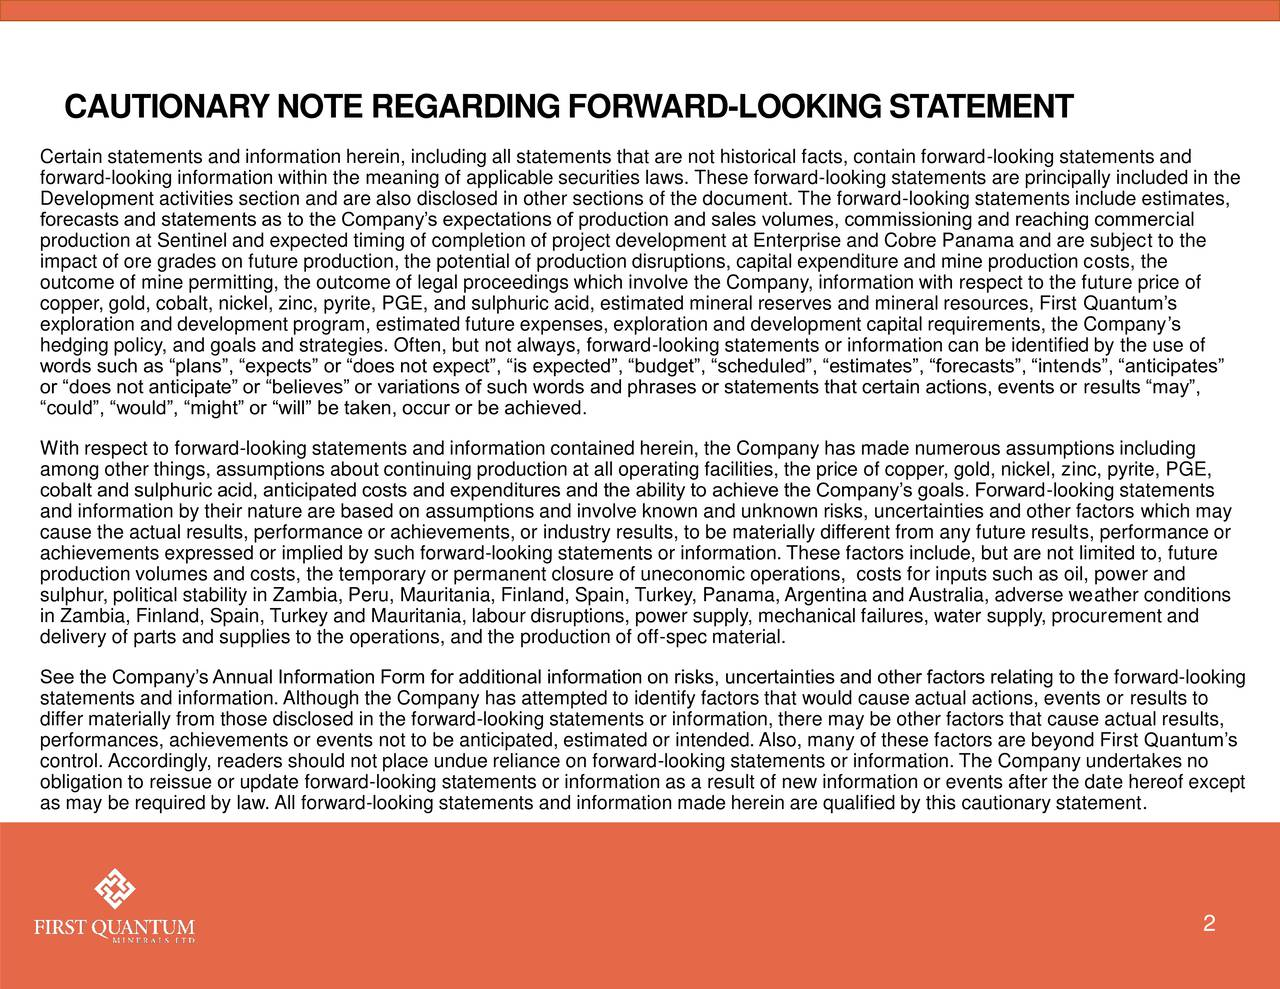 Certain statements and information herein, including all statements that are not historical facts, contain forward-looking statements and forward-looking information within the meaning of applicable securities laws. These forward-looking statements are principally included in the Development activities section and are also disclosed in other sections of the document. The forward-looking statements include estimates, forecasts and statements as to the Companys expectations of production and sales volumes, commissioning and reaching commercial production at Sentinel and expected timing of completion of project development at Enterprise and Cobre Panama and are subject to the impact of ore grades on future production, the potential of production disruptions, capital expenditure and mine production costs, the outcome of mine permitting, the outcome of legal proceedings which involve the Company, information with respect to the future price of copper, gold, cobalt, nickel, zinc, pyrite, PGE, and sulphuric acid, estimated mineral reserves and mineral resources, First Quantums exploration and development program, estimated future expenses, exploration and development capital requirements, the Companys hedging policy, and goals and strategies. Often, but not always, forward-looking statements or information can be identified by the use of words such as plans, expects or does not expect, is expected, budget, scheduled, estimates, forecasts, intends, anticipates or does not anticipate or believes or variations of such words and phrases or statements that certain actions, events or results may, could, would, might or will be taken, occur or be achieved. With respect to forward-looking statements and information contained herein, the Company has made numerous assumptions including among other things, assumptions about continuing production at all operating facilities, the price of copper, gold, nickel, zinc, pyrite, PGE, cobalt and sulphuric acid, anticipated costs and expendit